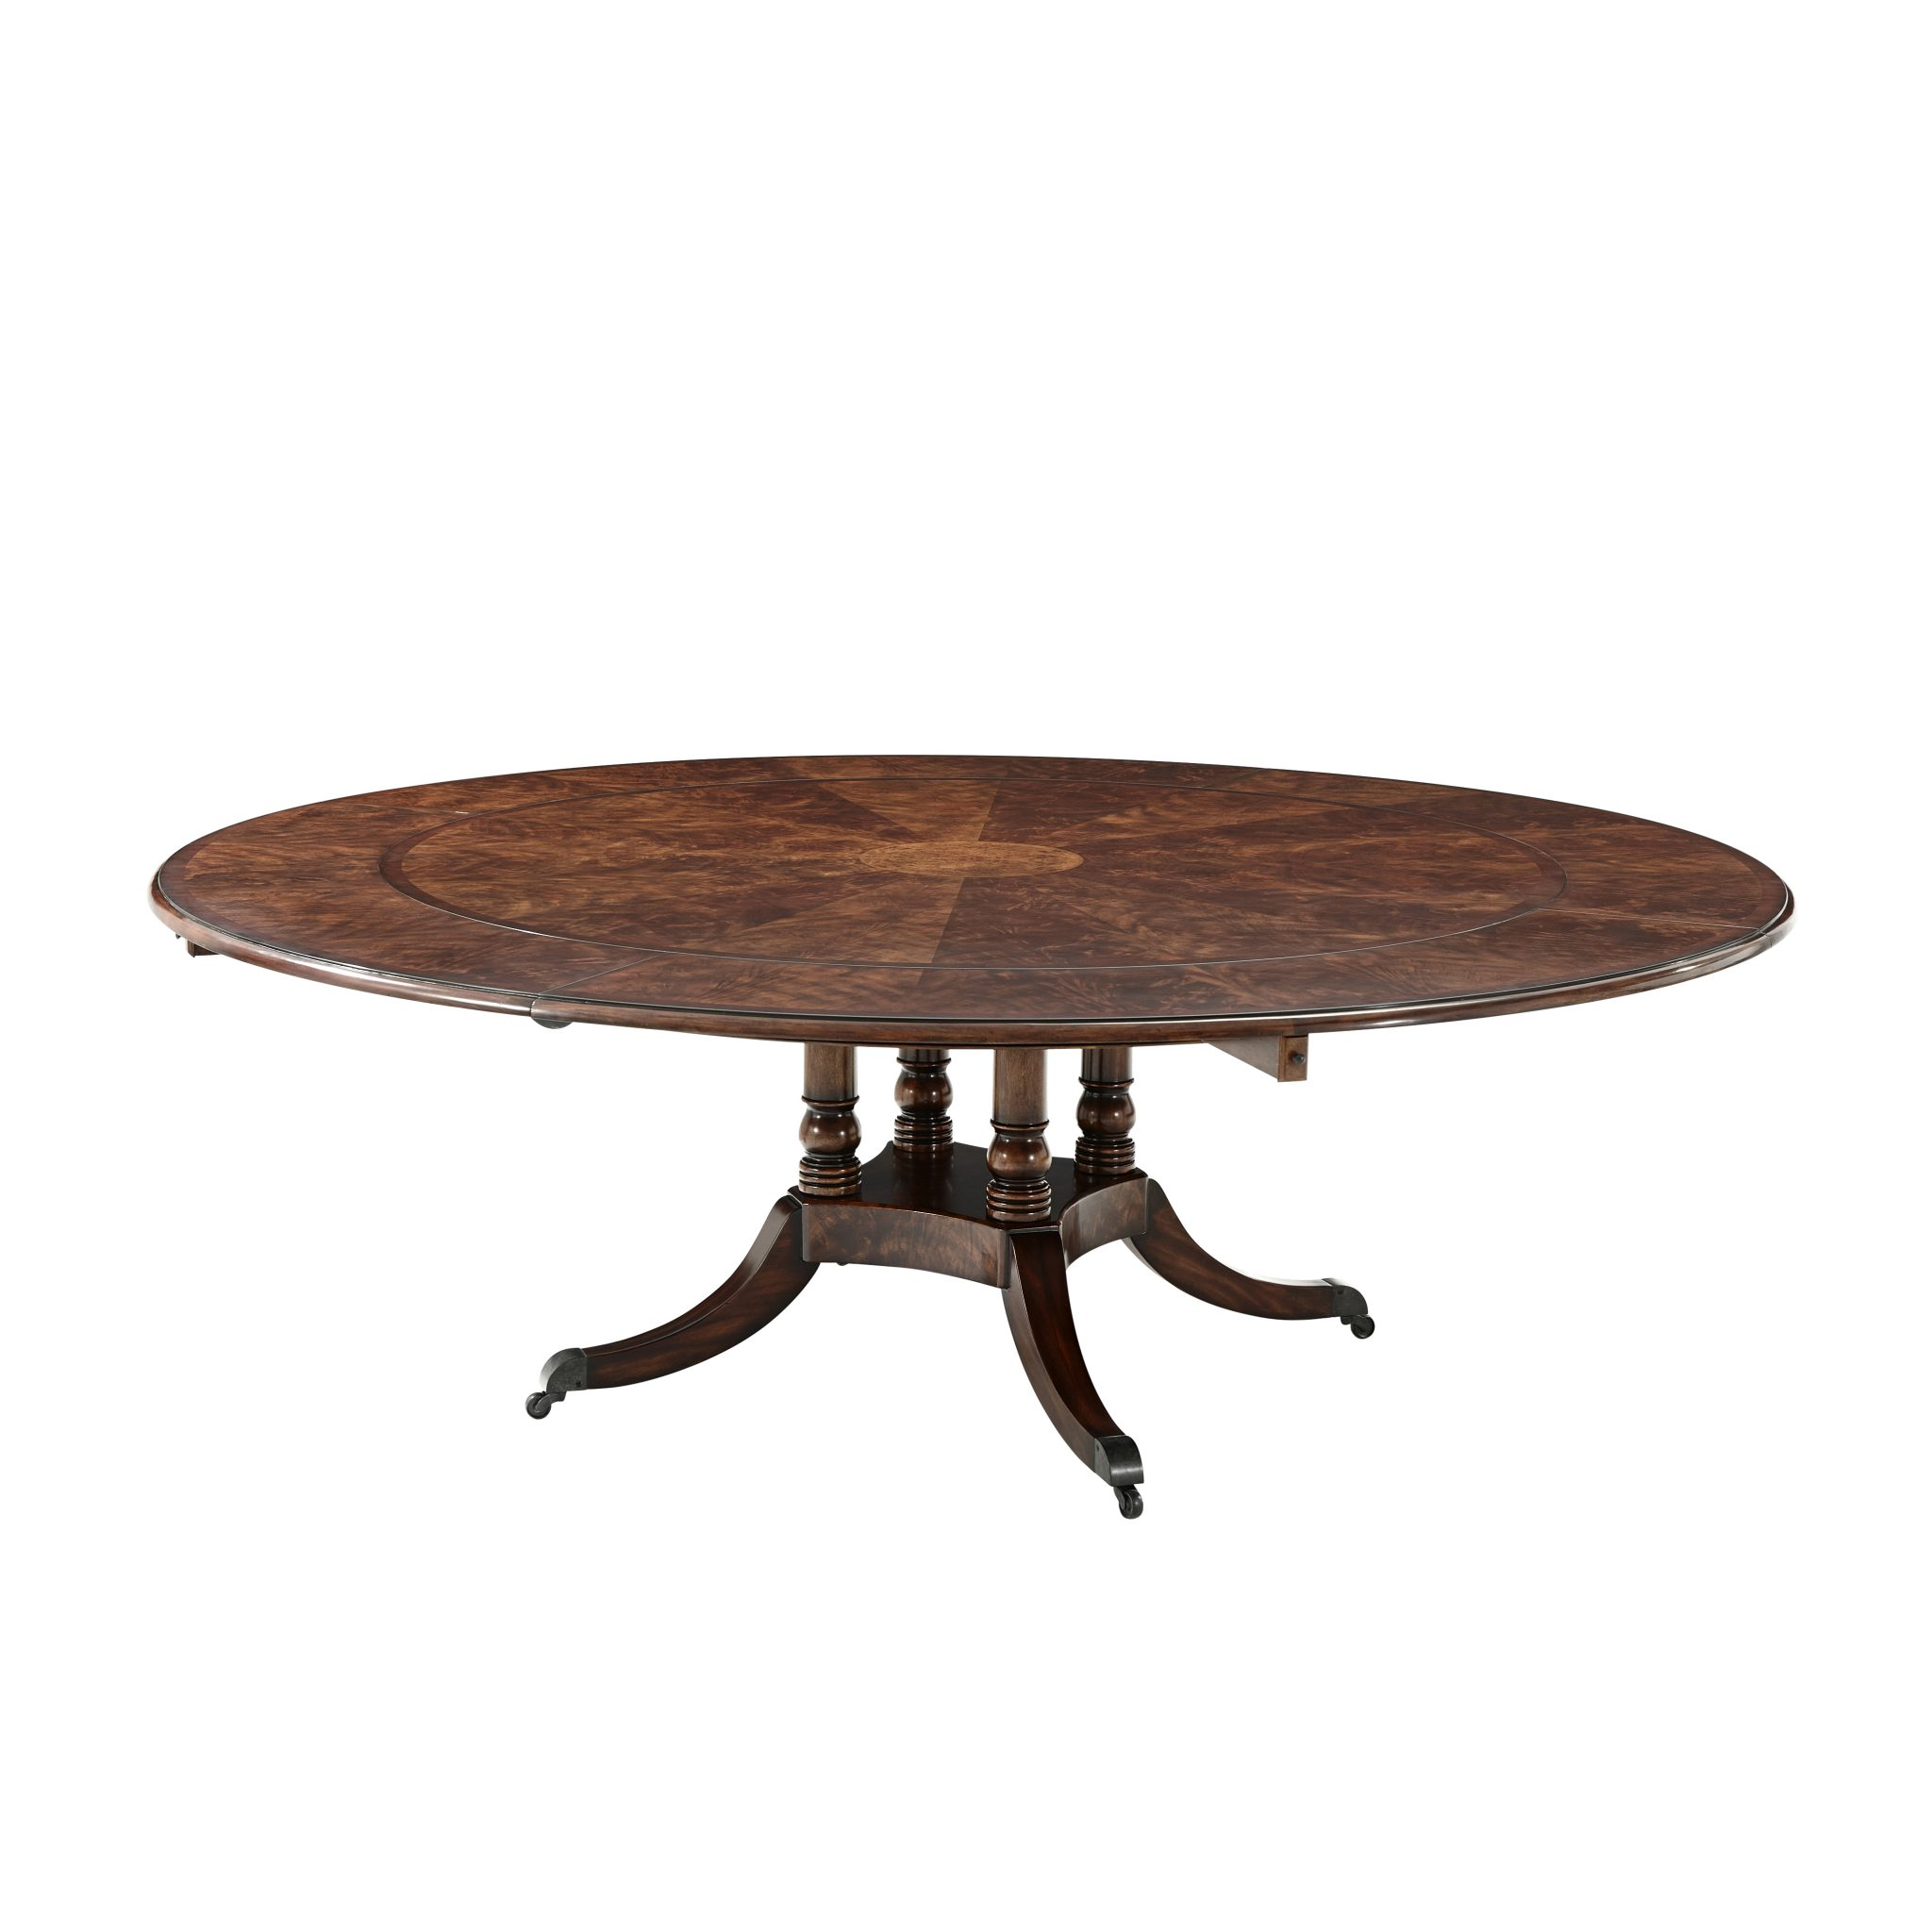 Reproduction Large Circular Dining Table English Antiques Caledonian Inc Barrington Il 60010 847 381 0569